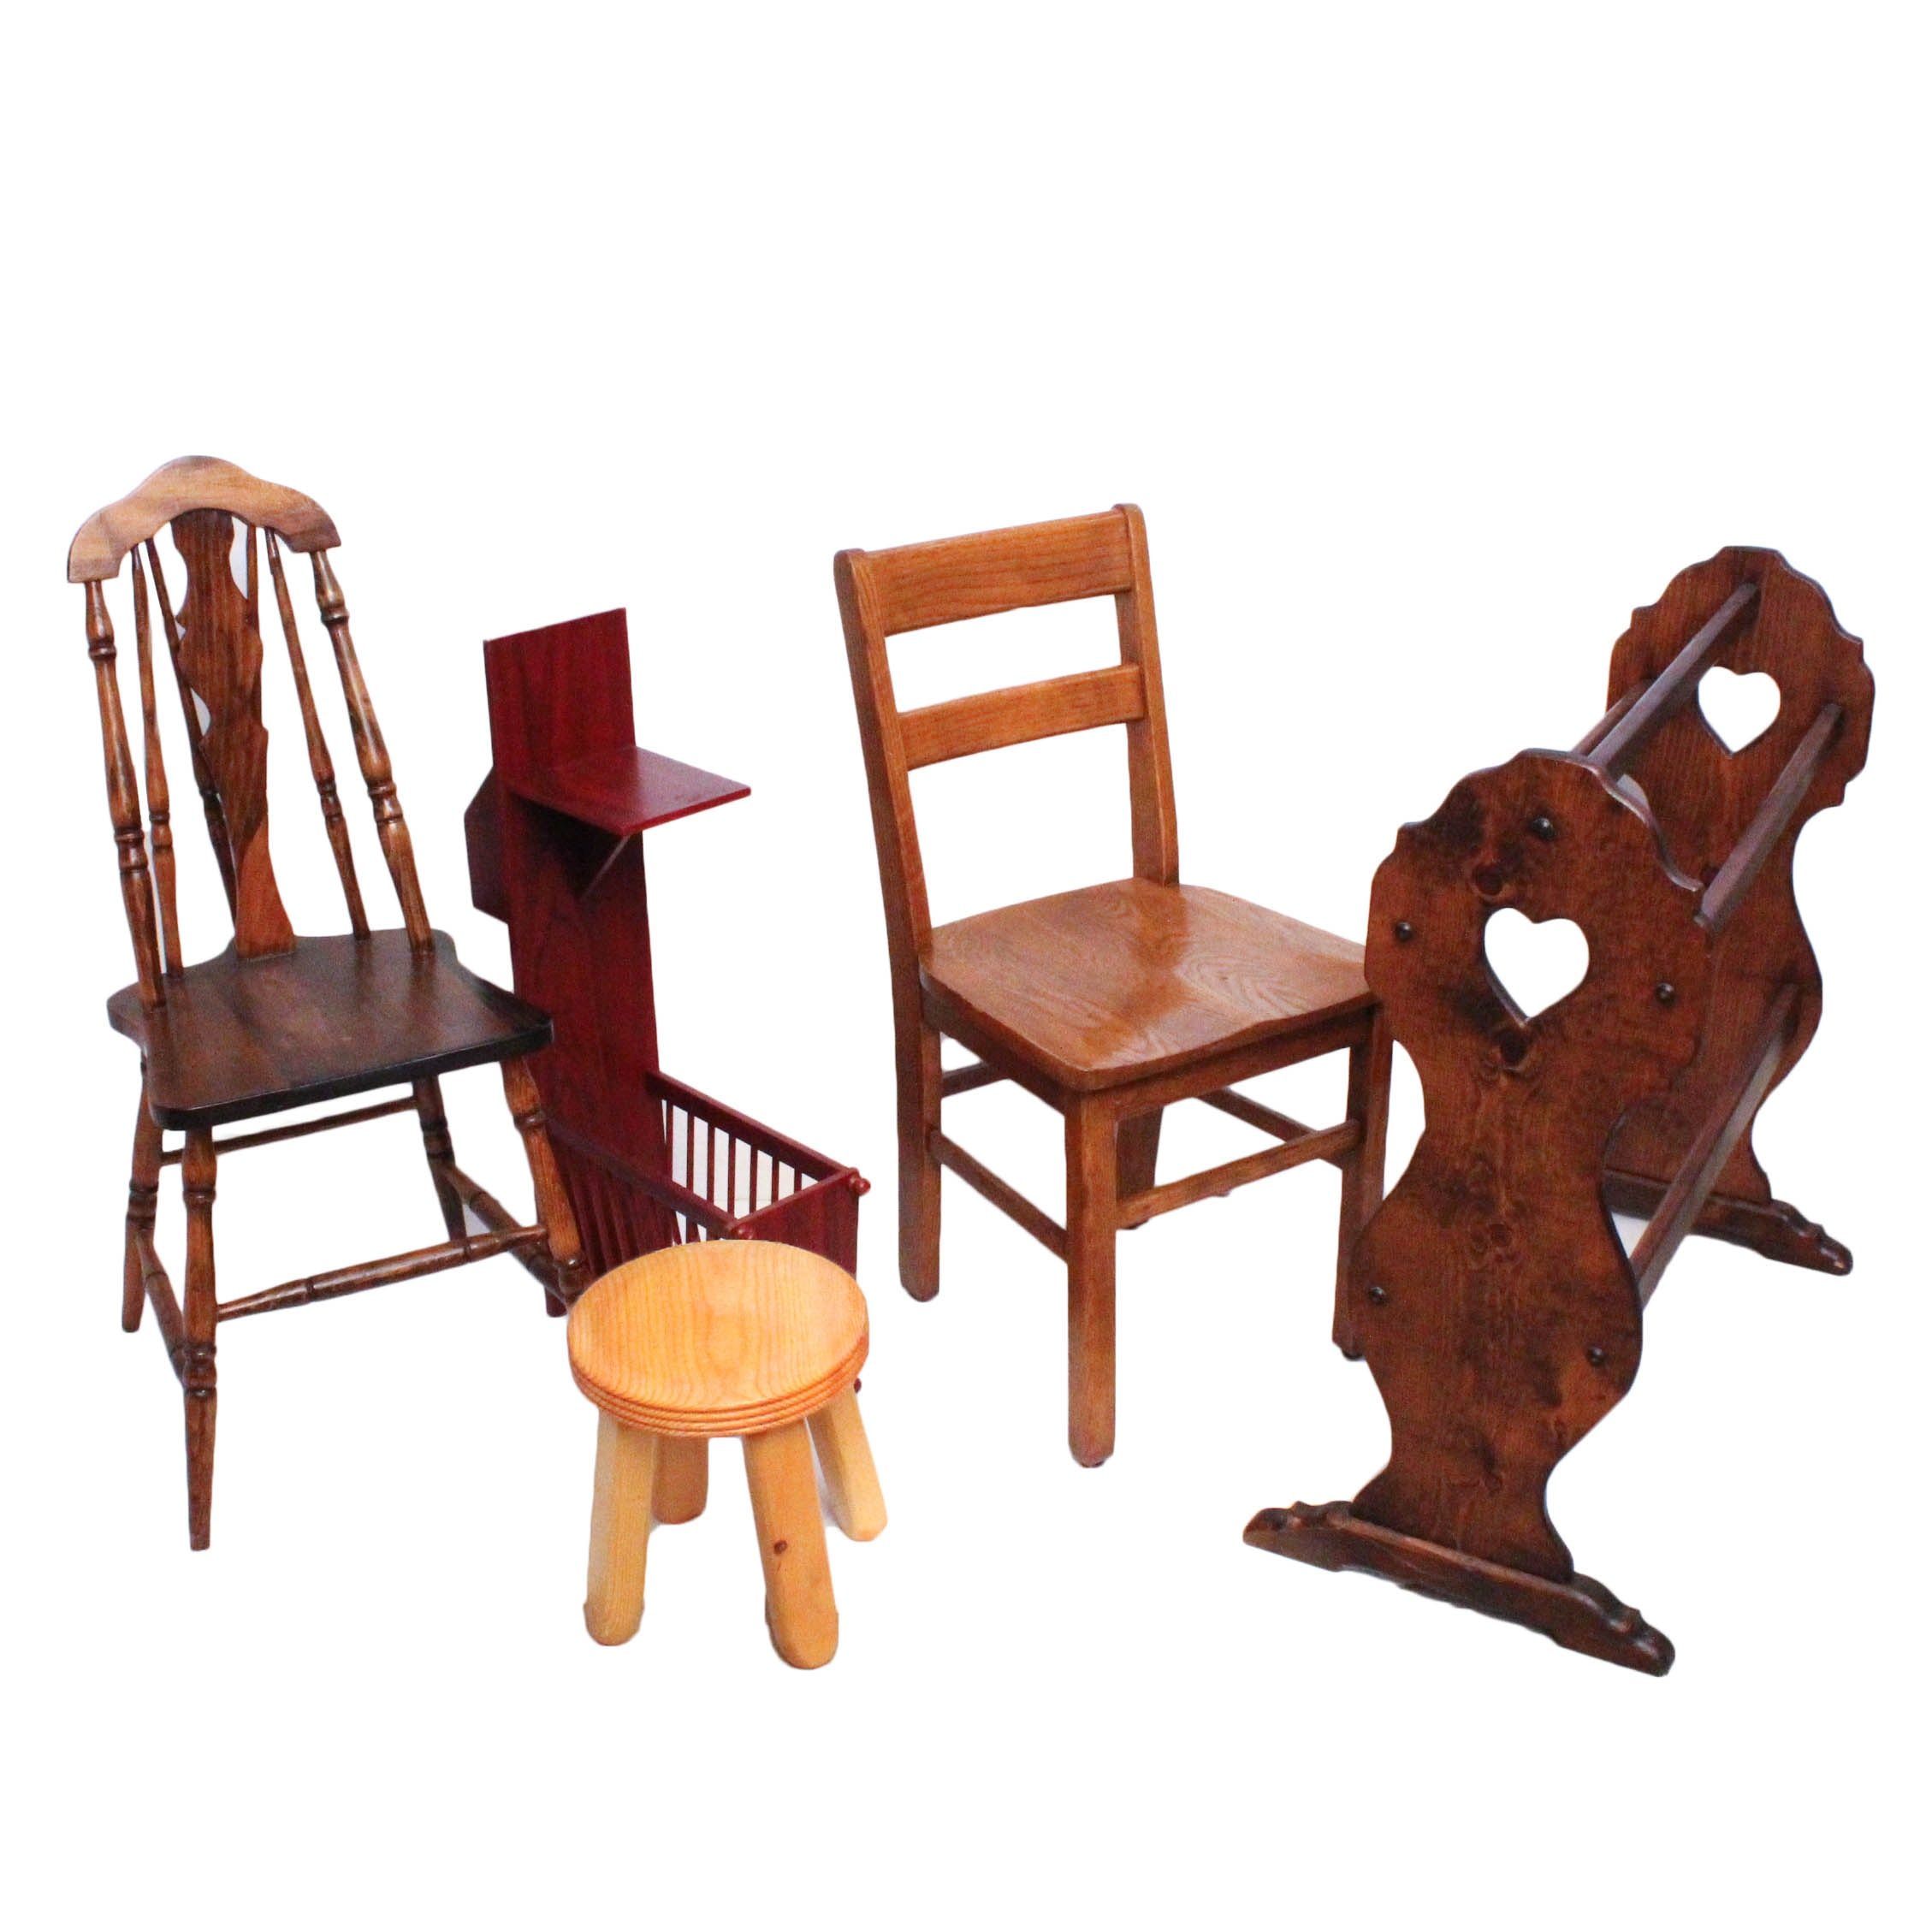 Vintage Wooden Accent Furniture